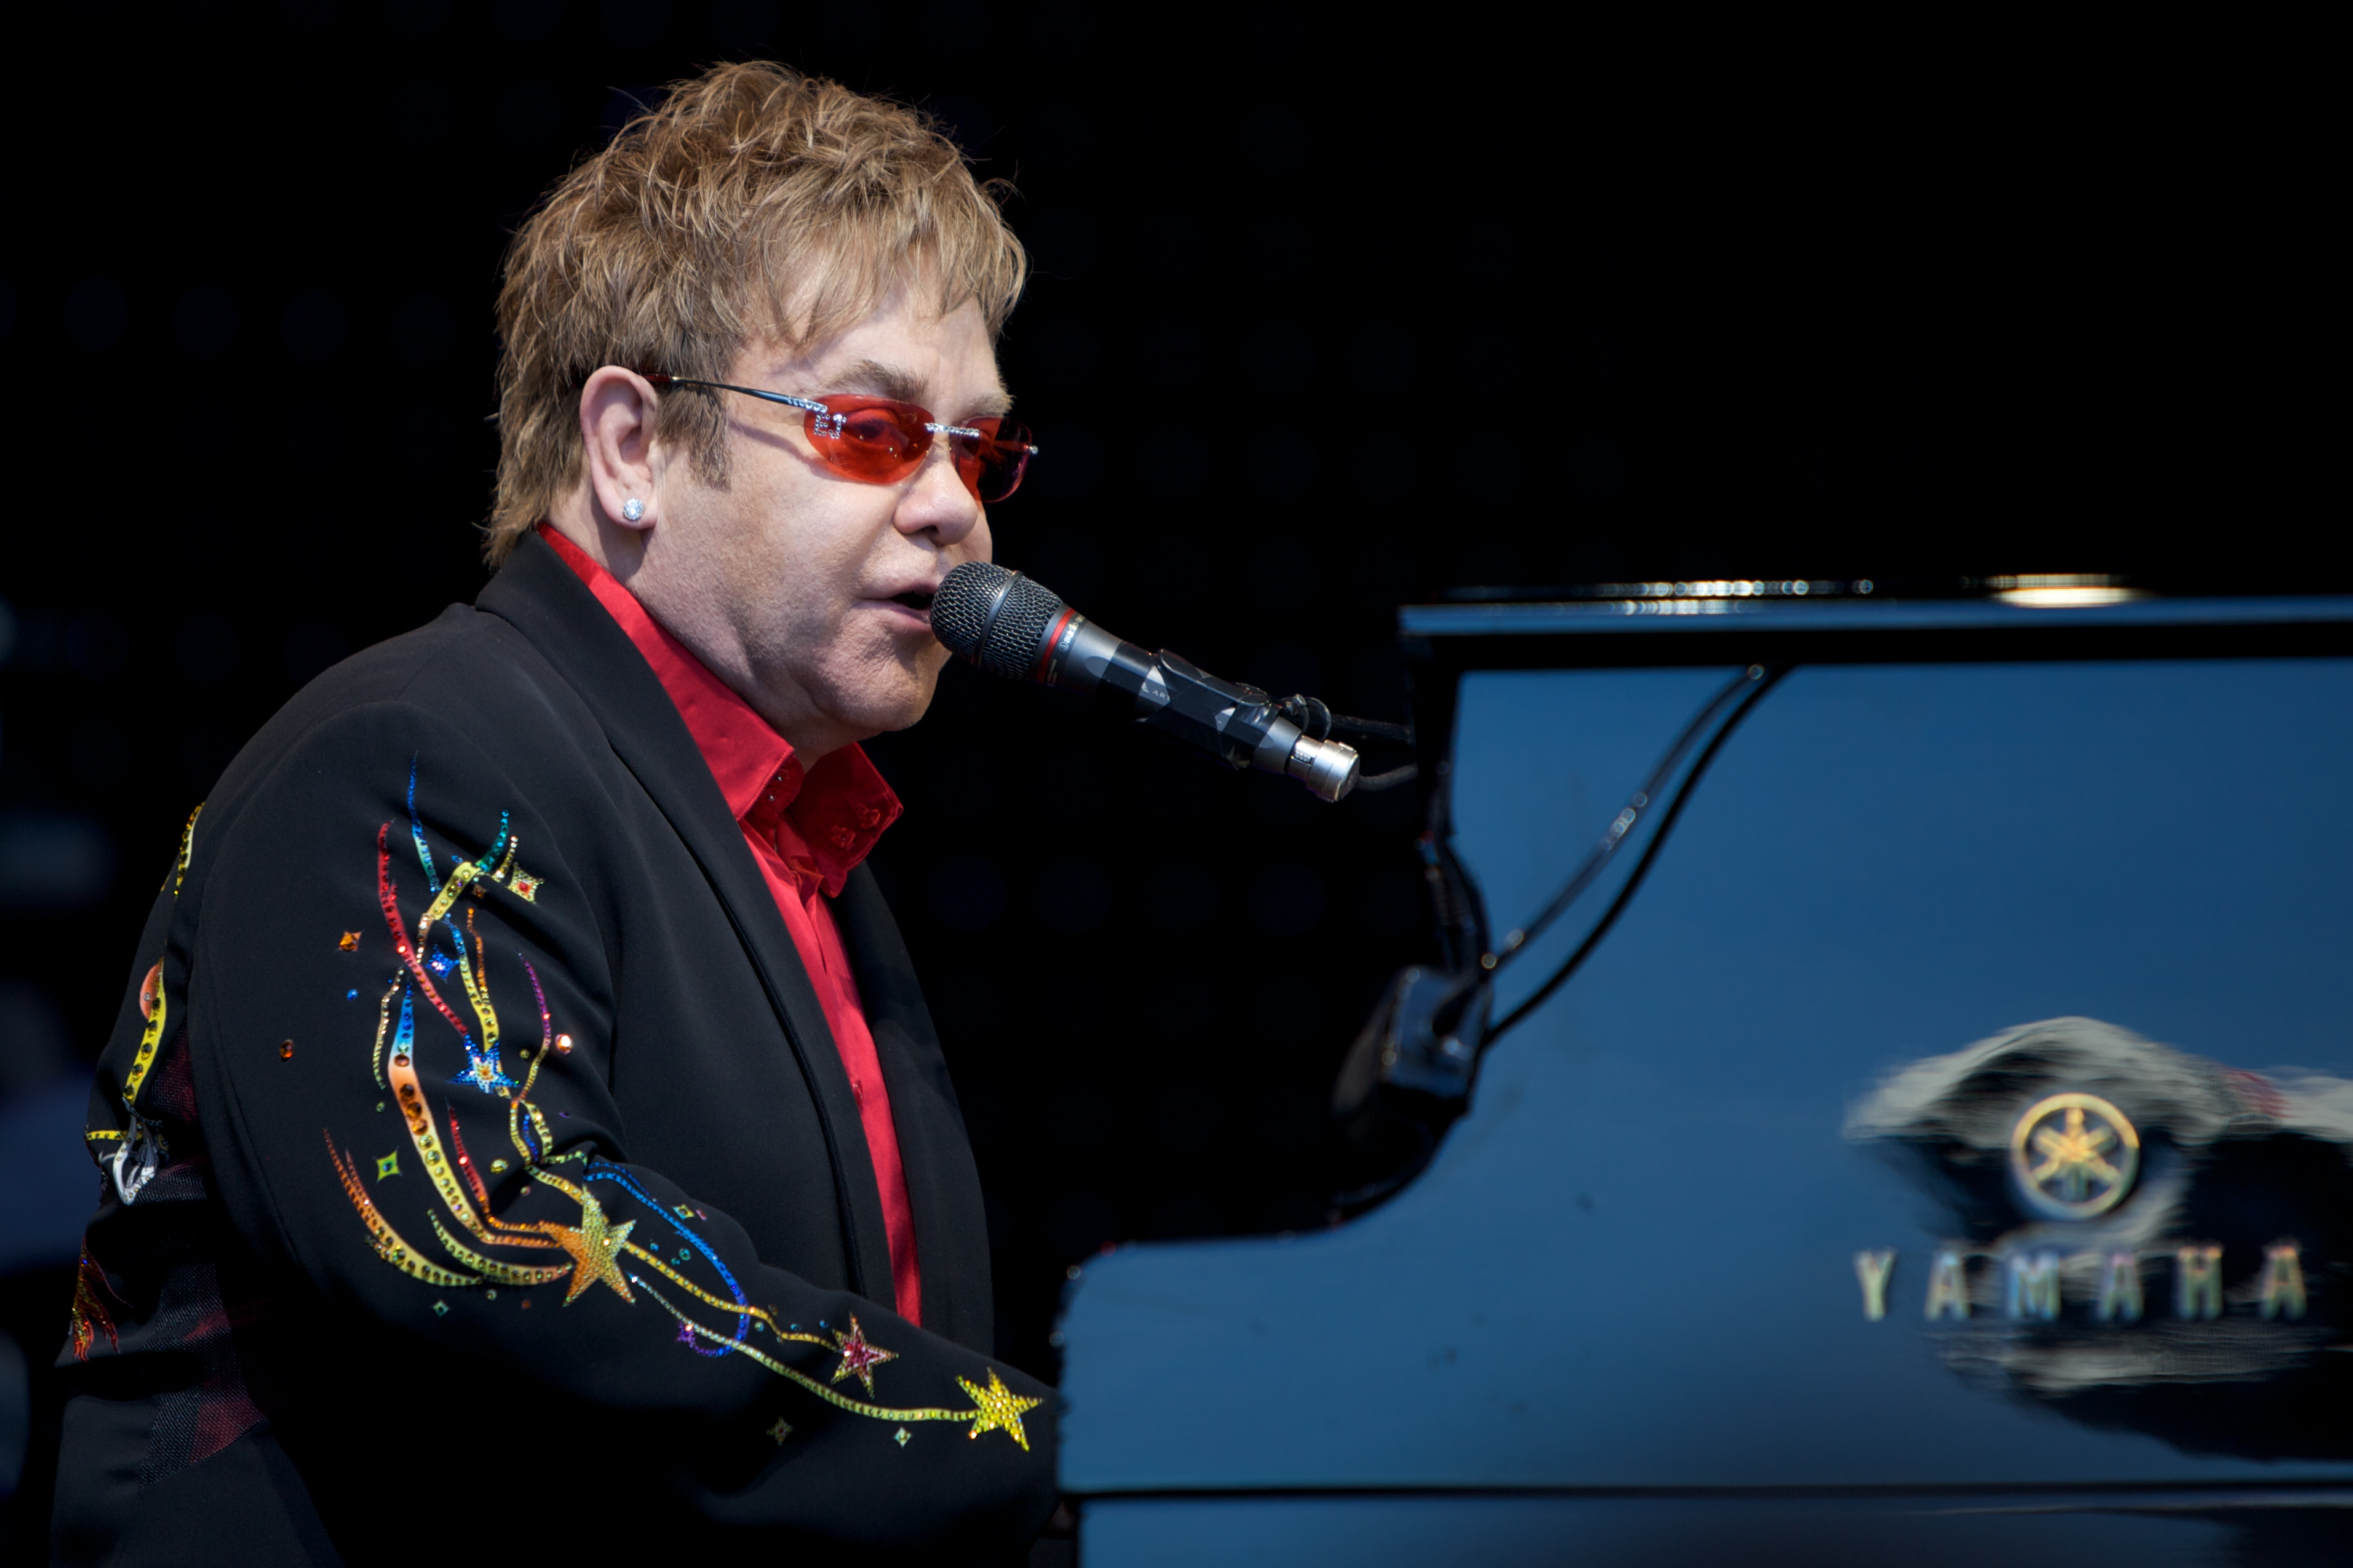 Elton John Christmas Song.Your Song New Christmas Hit The Bubble